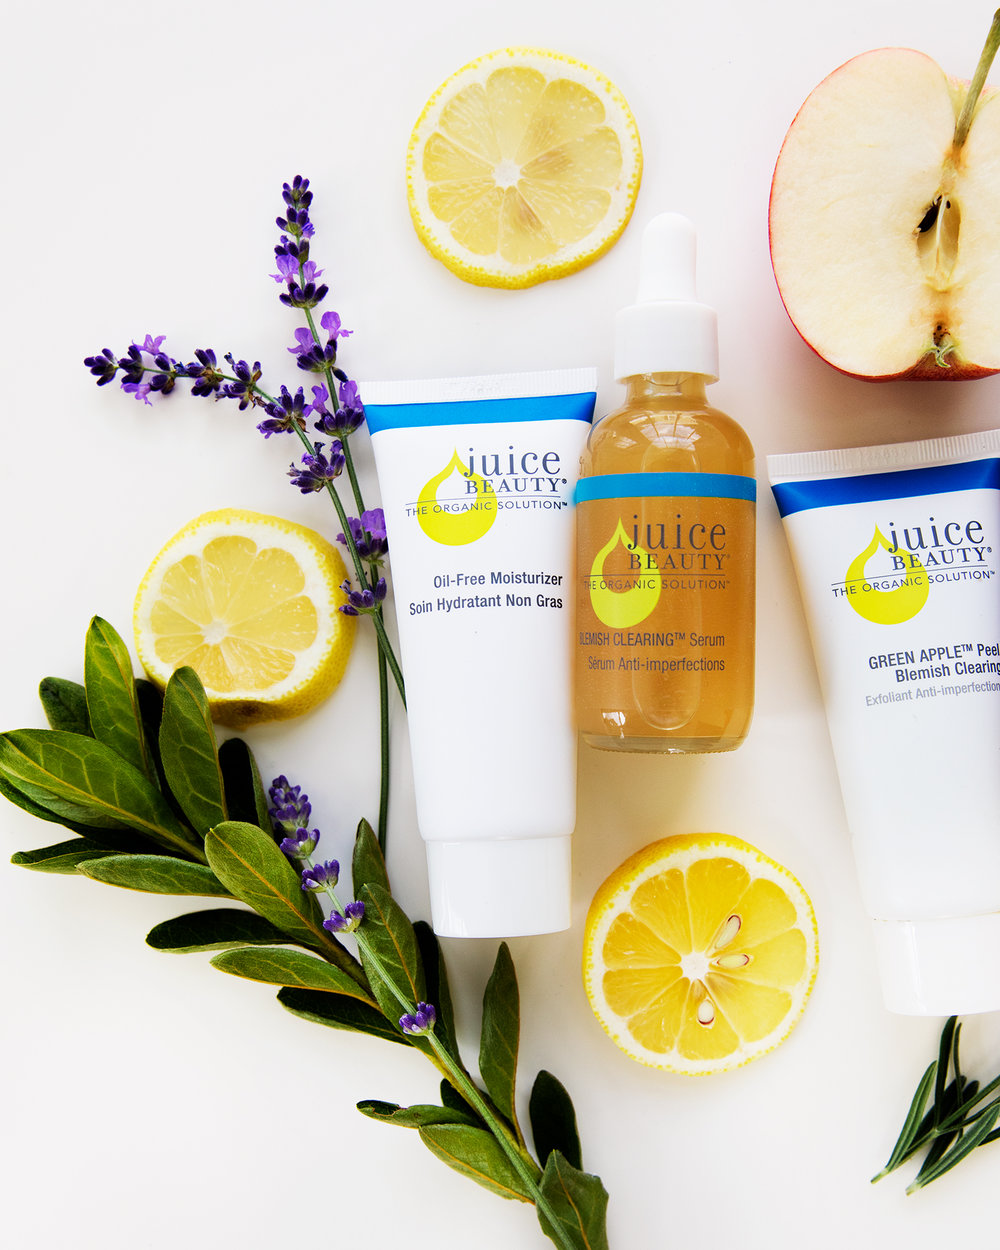 organic blemish solutions - from Juice Beauty